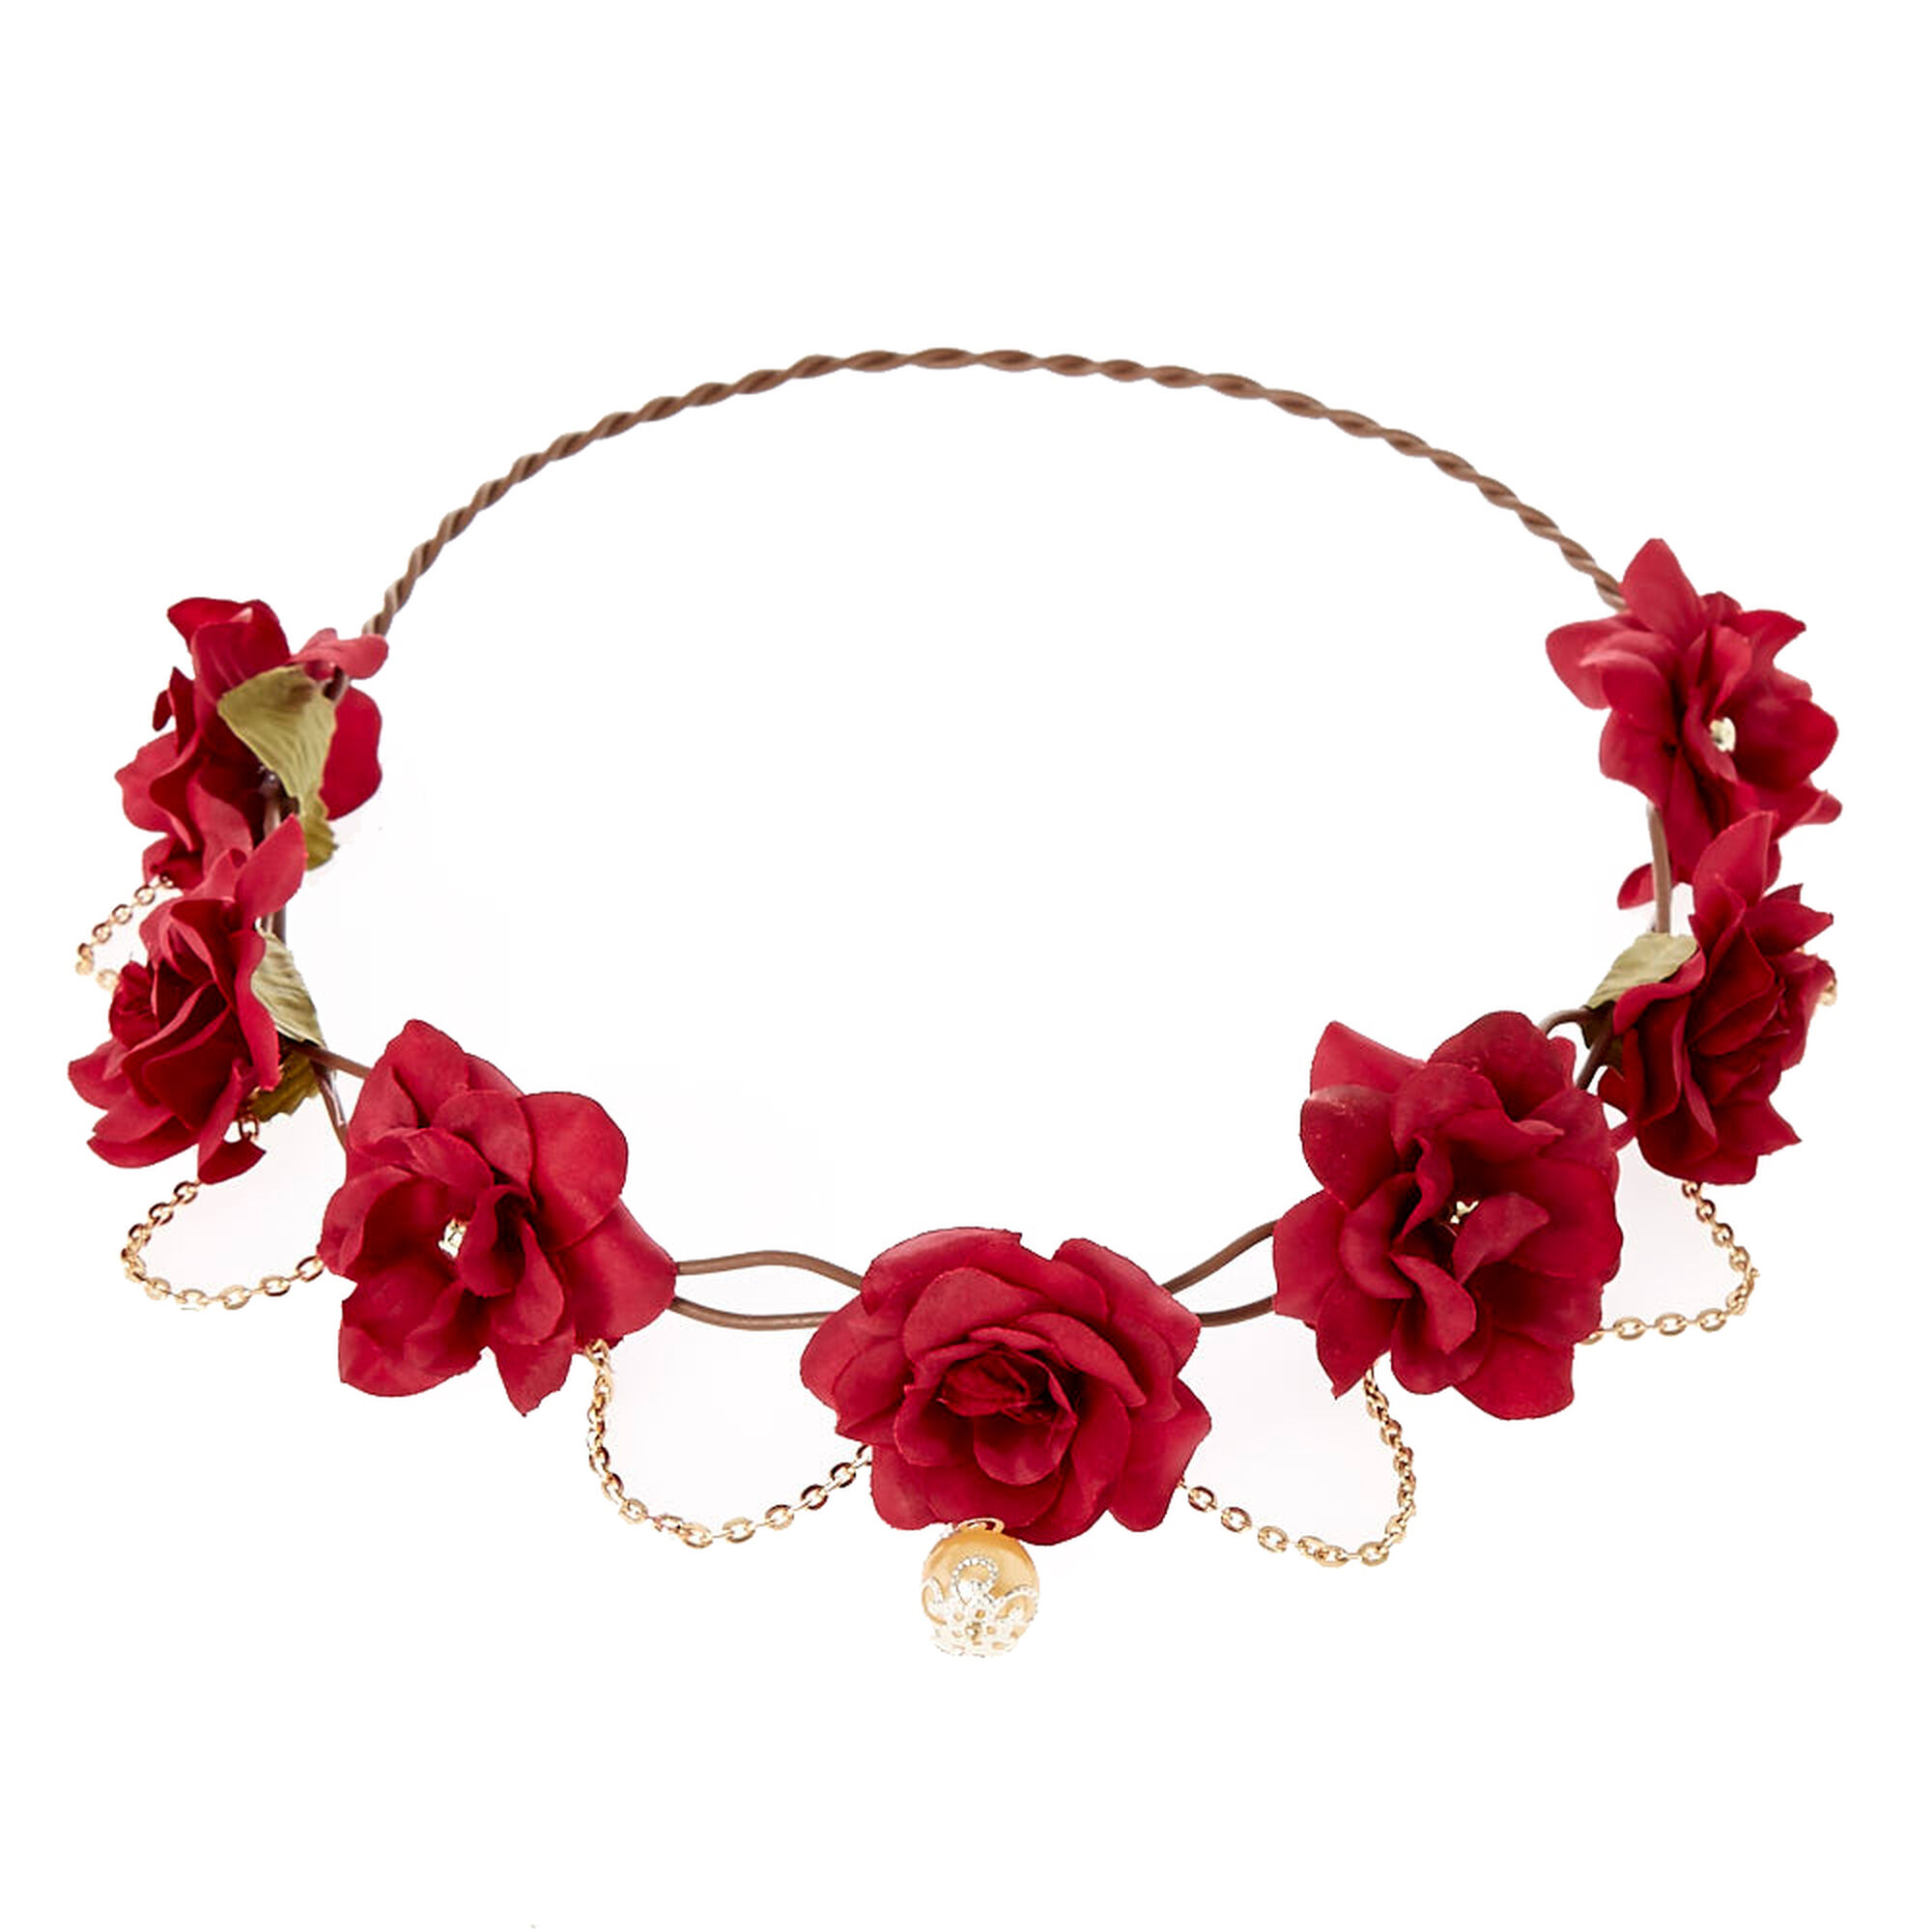 Gold chain burgundy flower crown headwrap claires gold chain burgundy flower crown headwrap izmirmasajfo Images